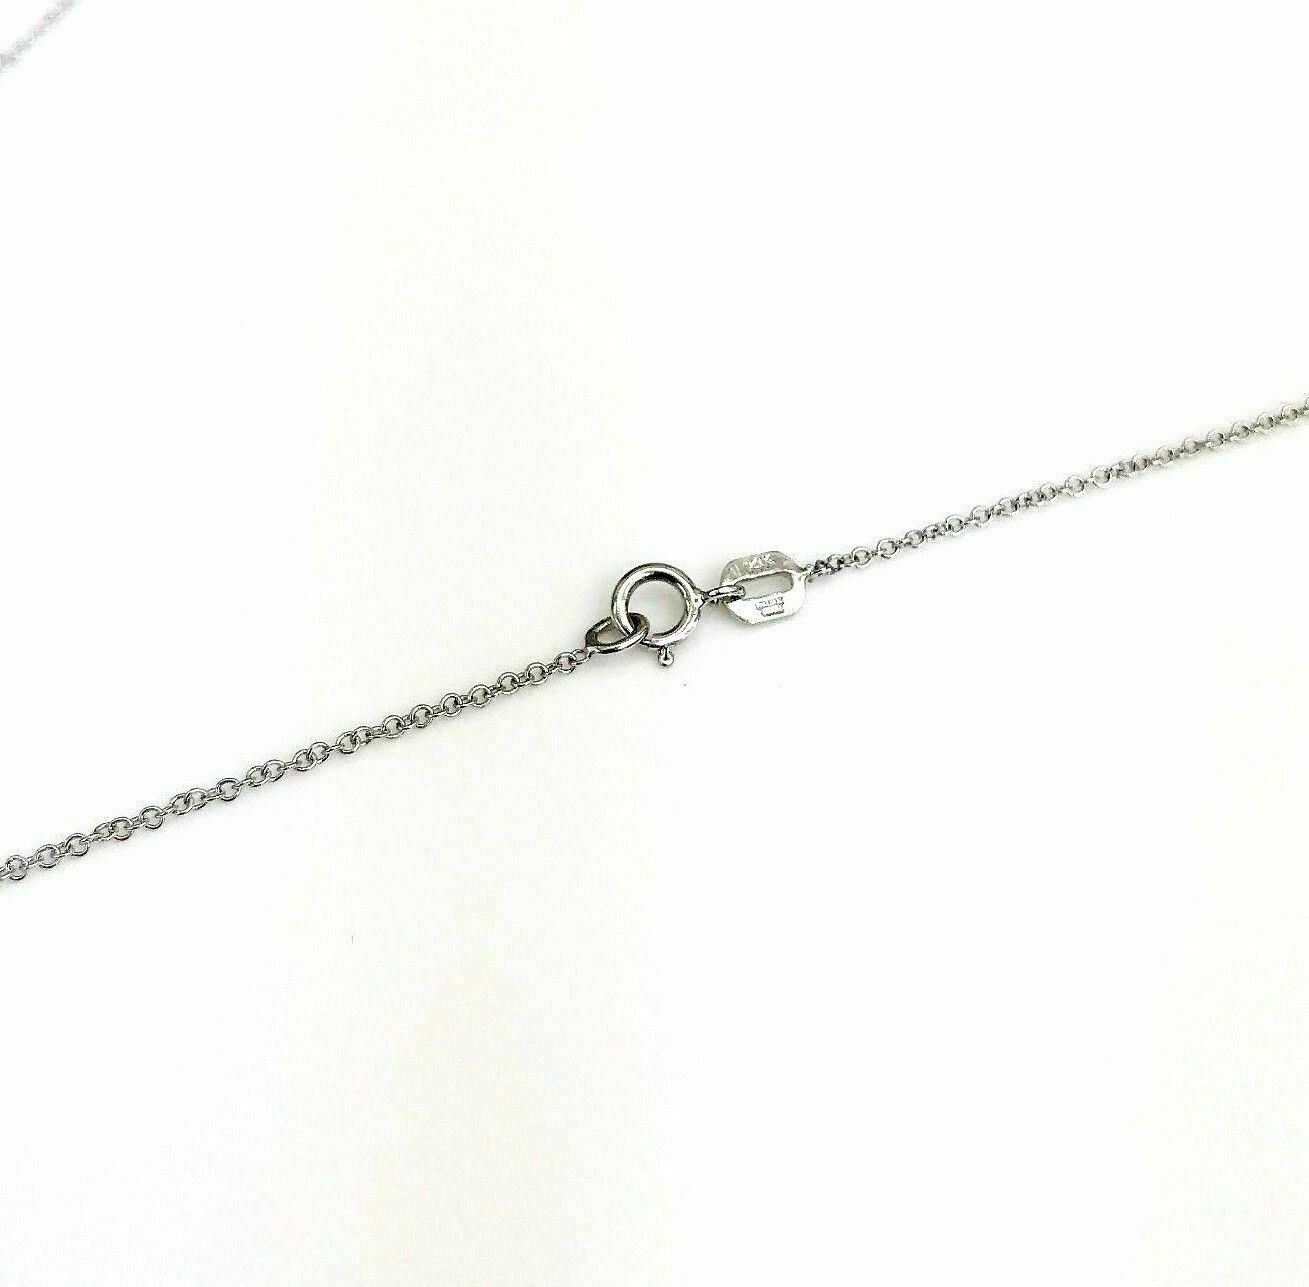 0.50 Carat 14K Round Bezel Diamond Solitaire Pendant with 14K White Gold Chain